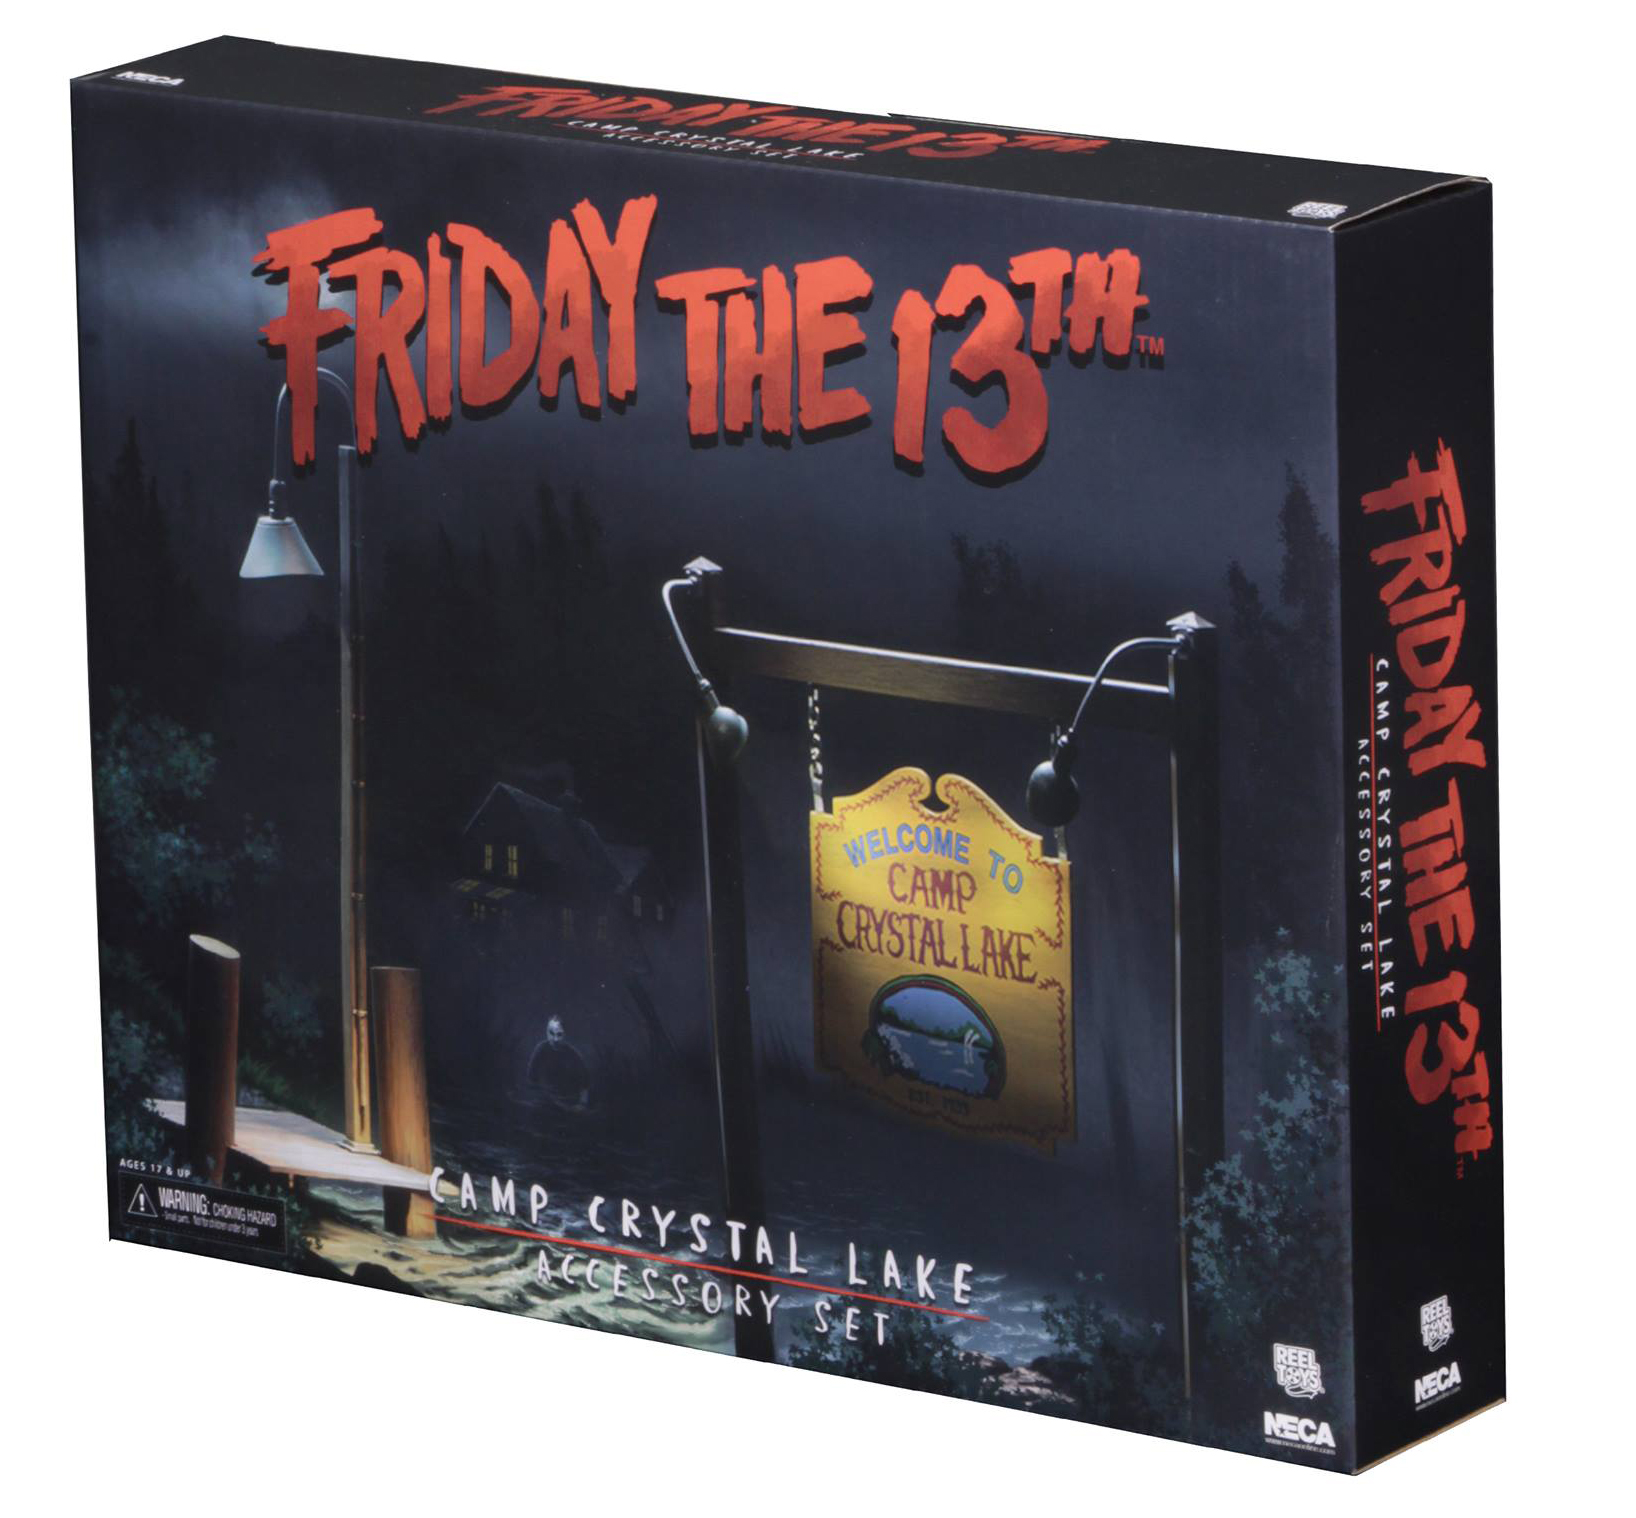 neca-friday-the-13th-camp-crystal-lake-accessory-pack-2